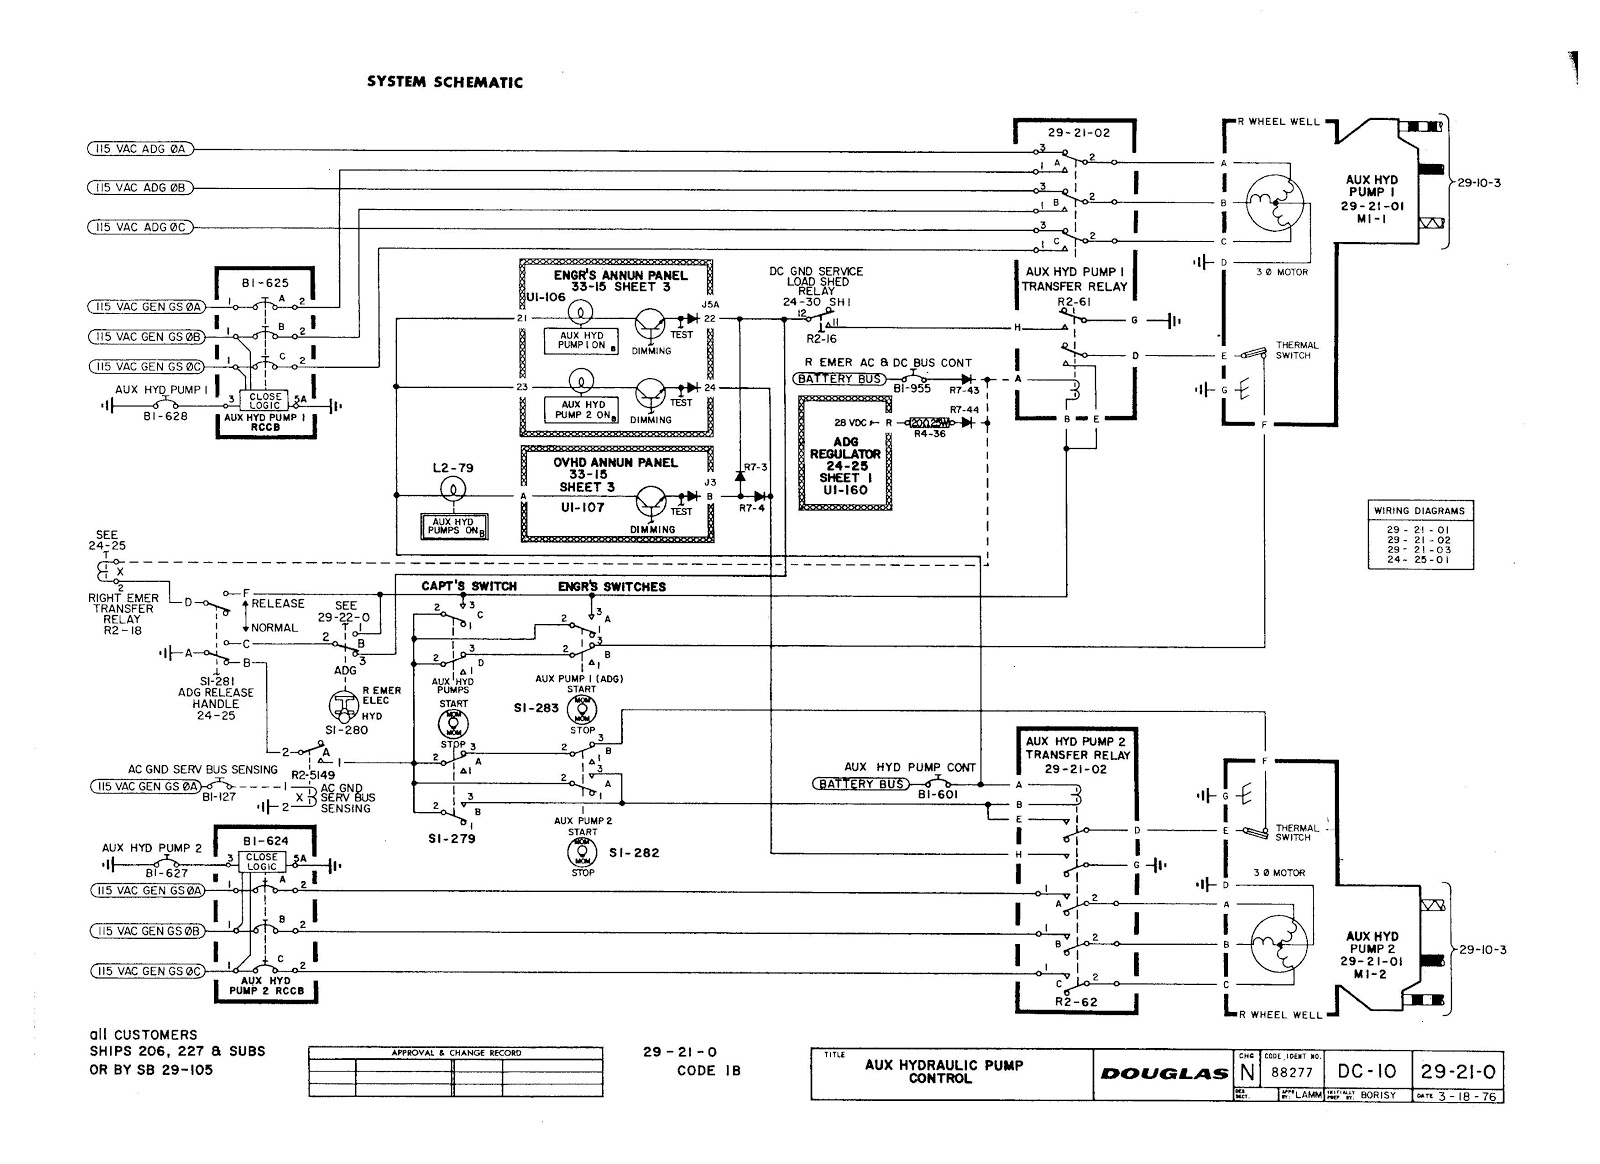 part 66 virtual school aircraft wiring and schematic diagrams aircraft wiring  harness schematic aircraft wiring schematic